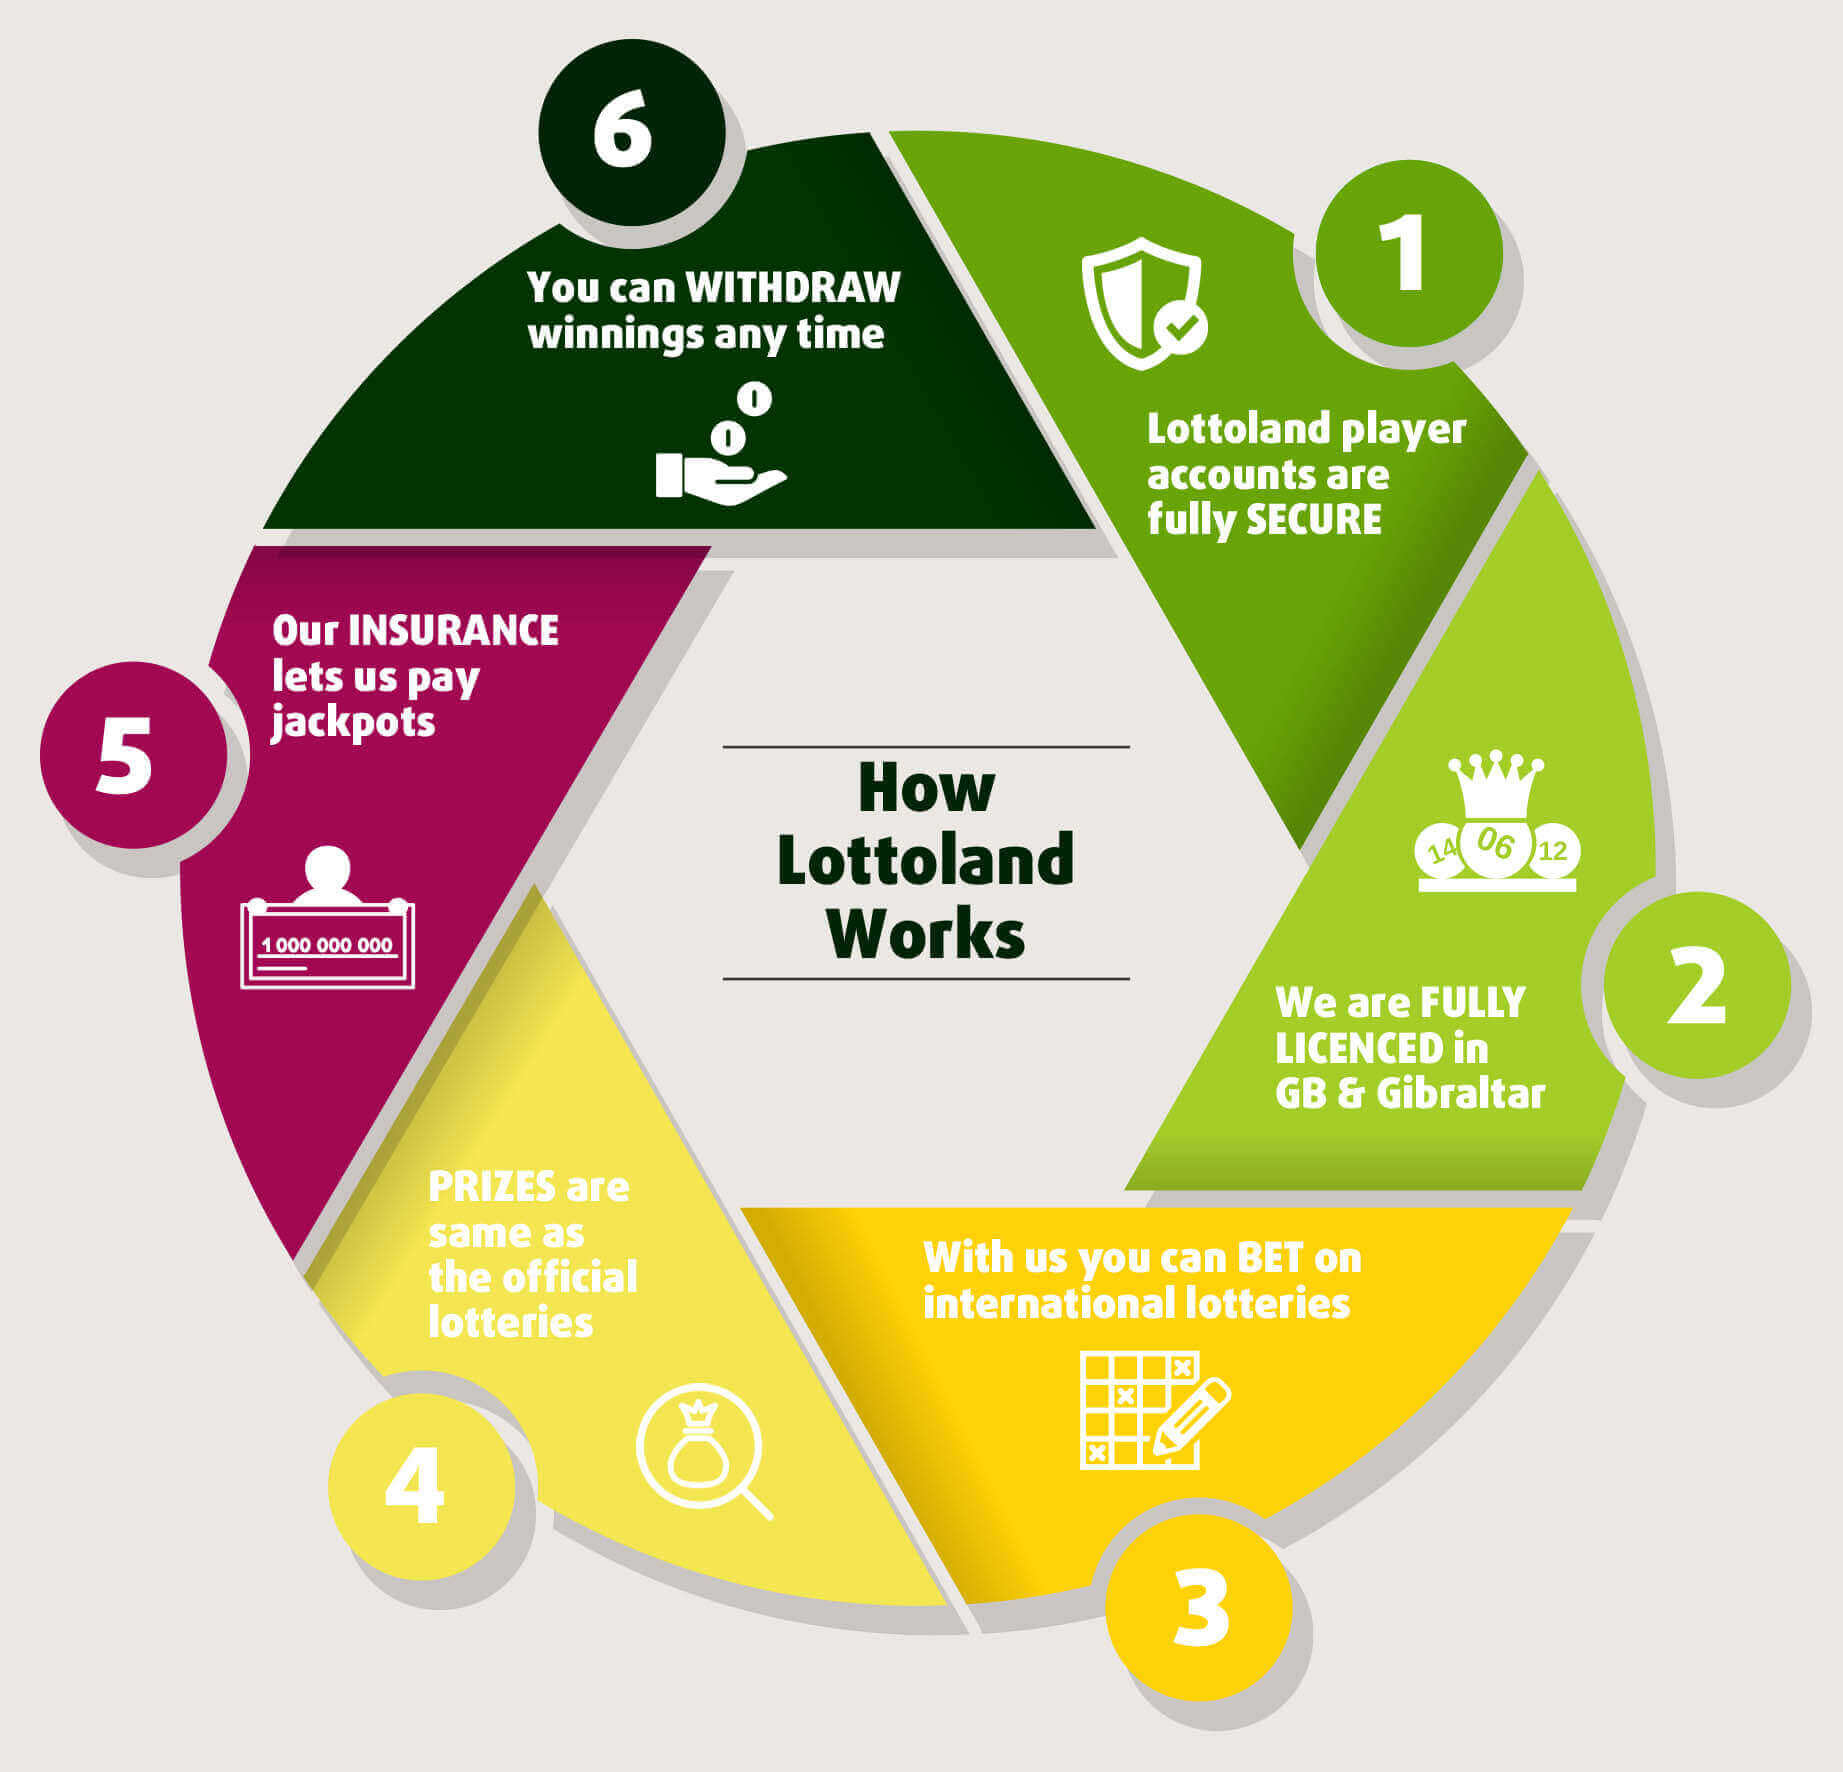 Lottoland business model